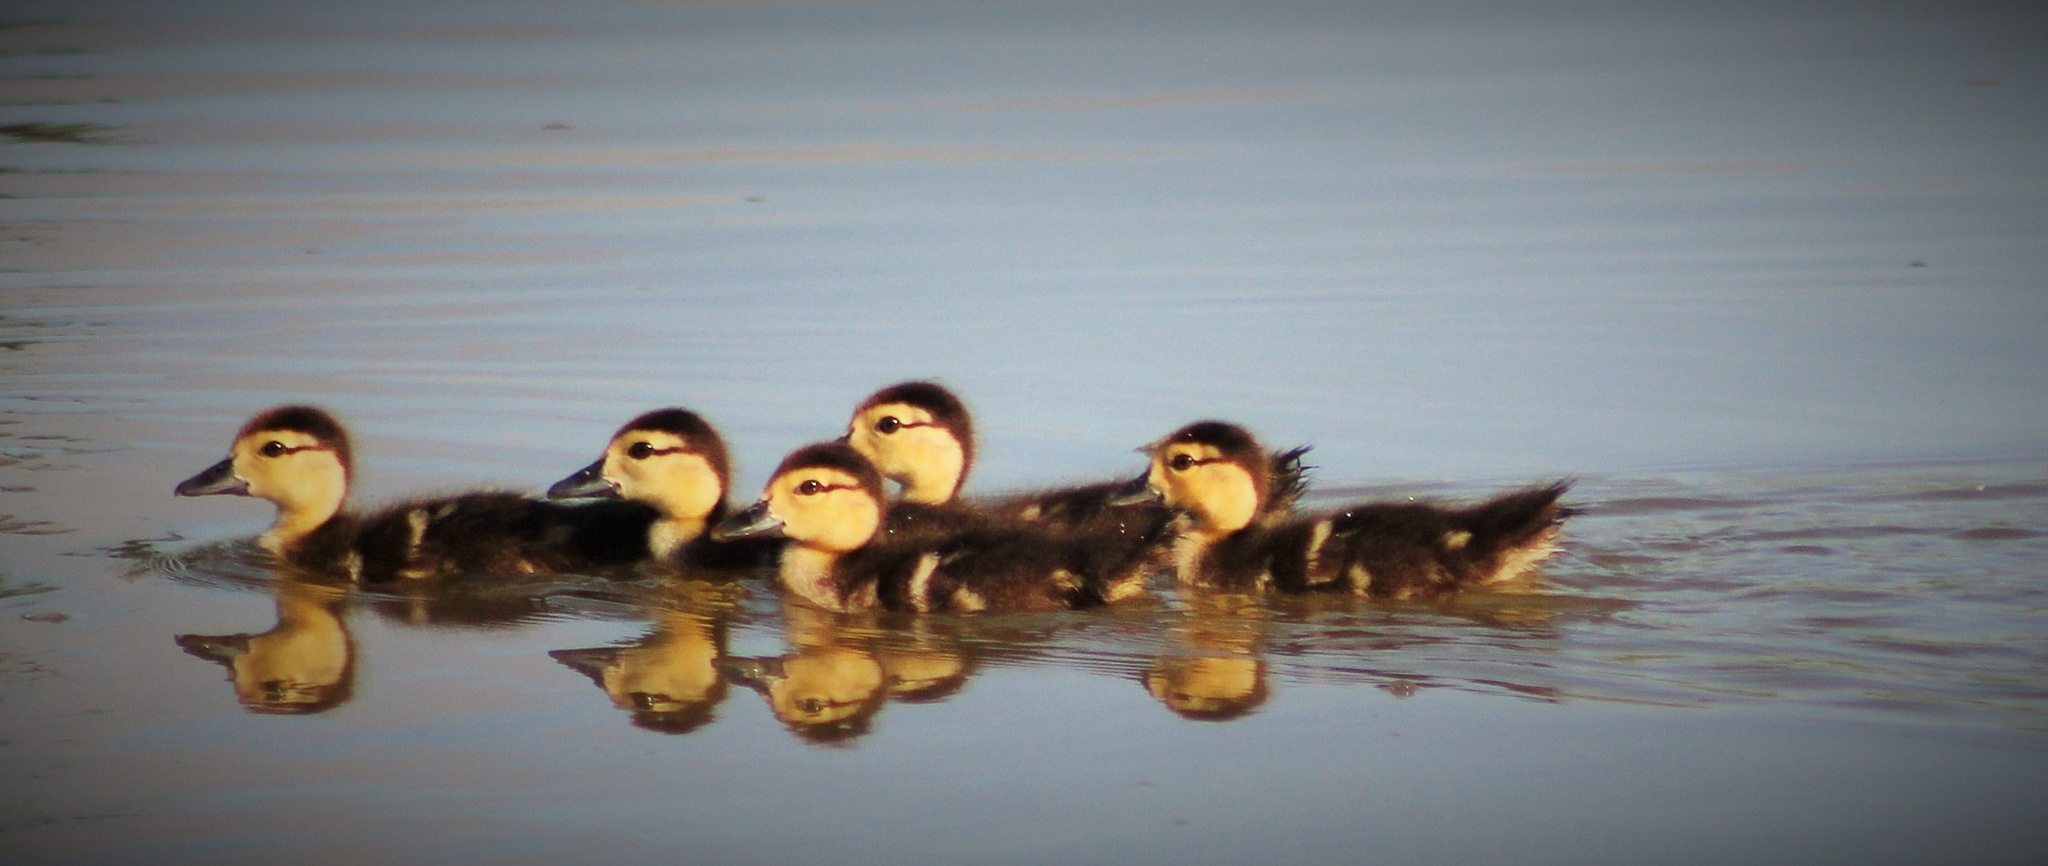 Double the ducklings by MORCINDERS